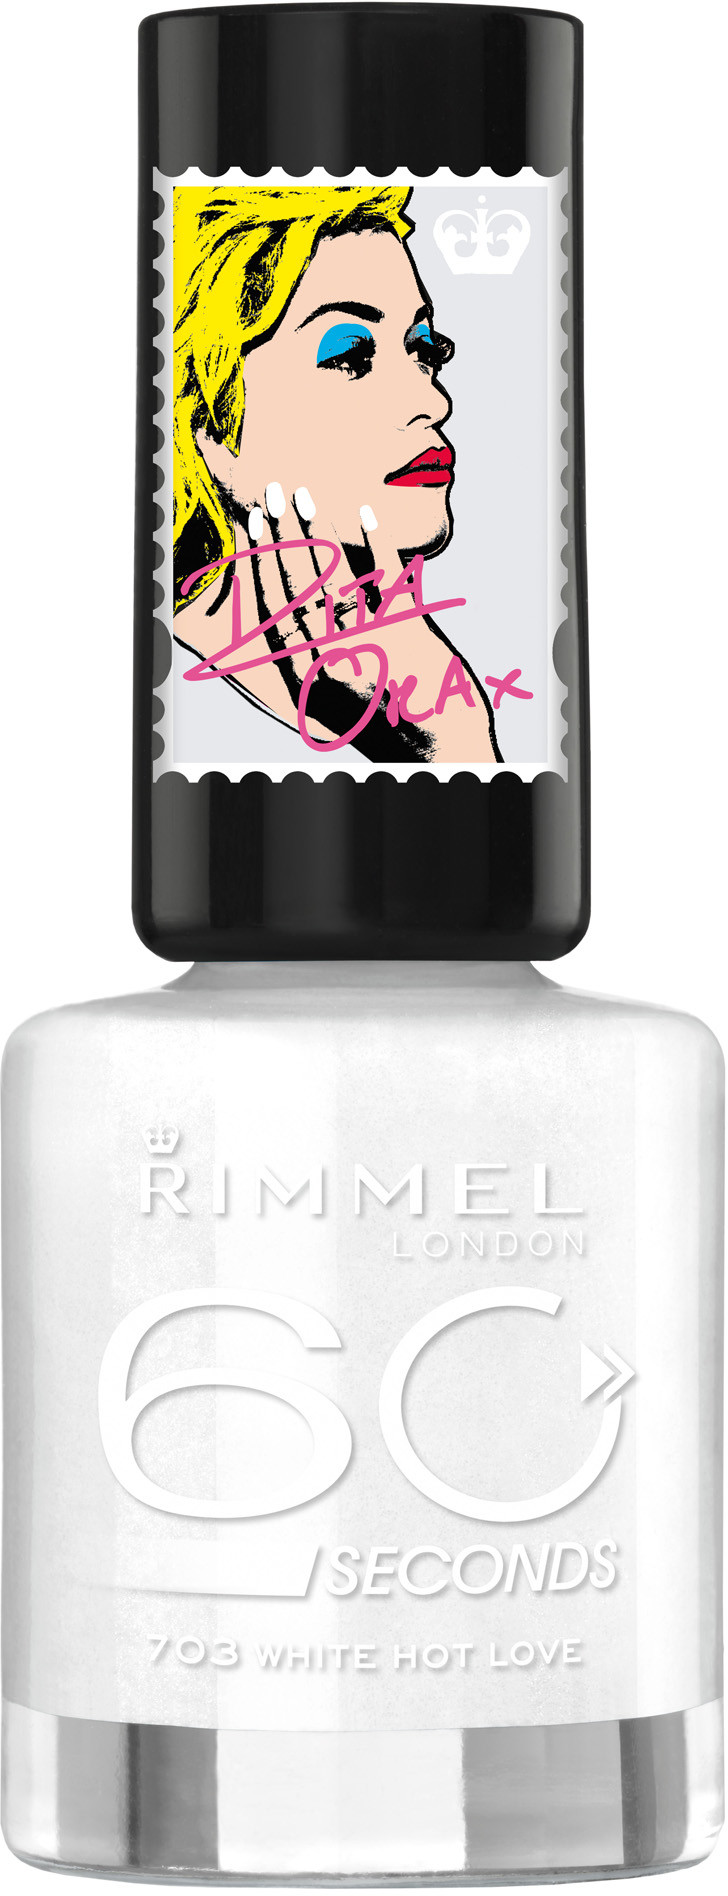 Rimmel 60 Seconds Super Shine lakier do paznokci 703 White Hot Love 8ml